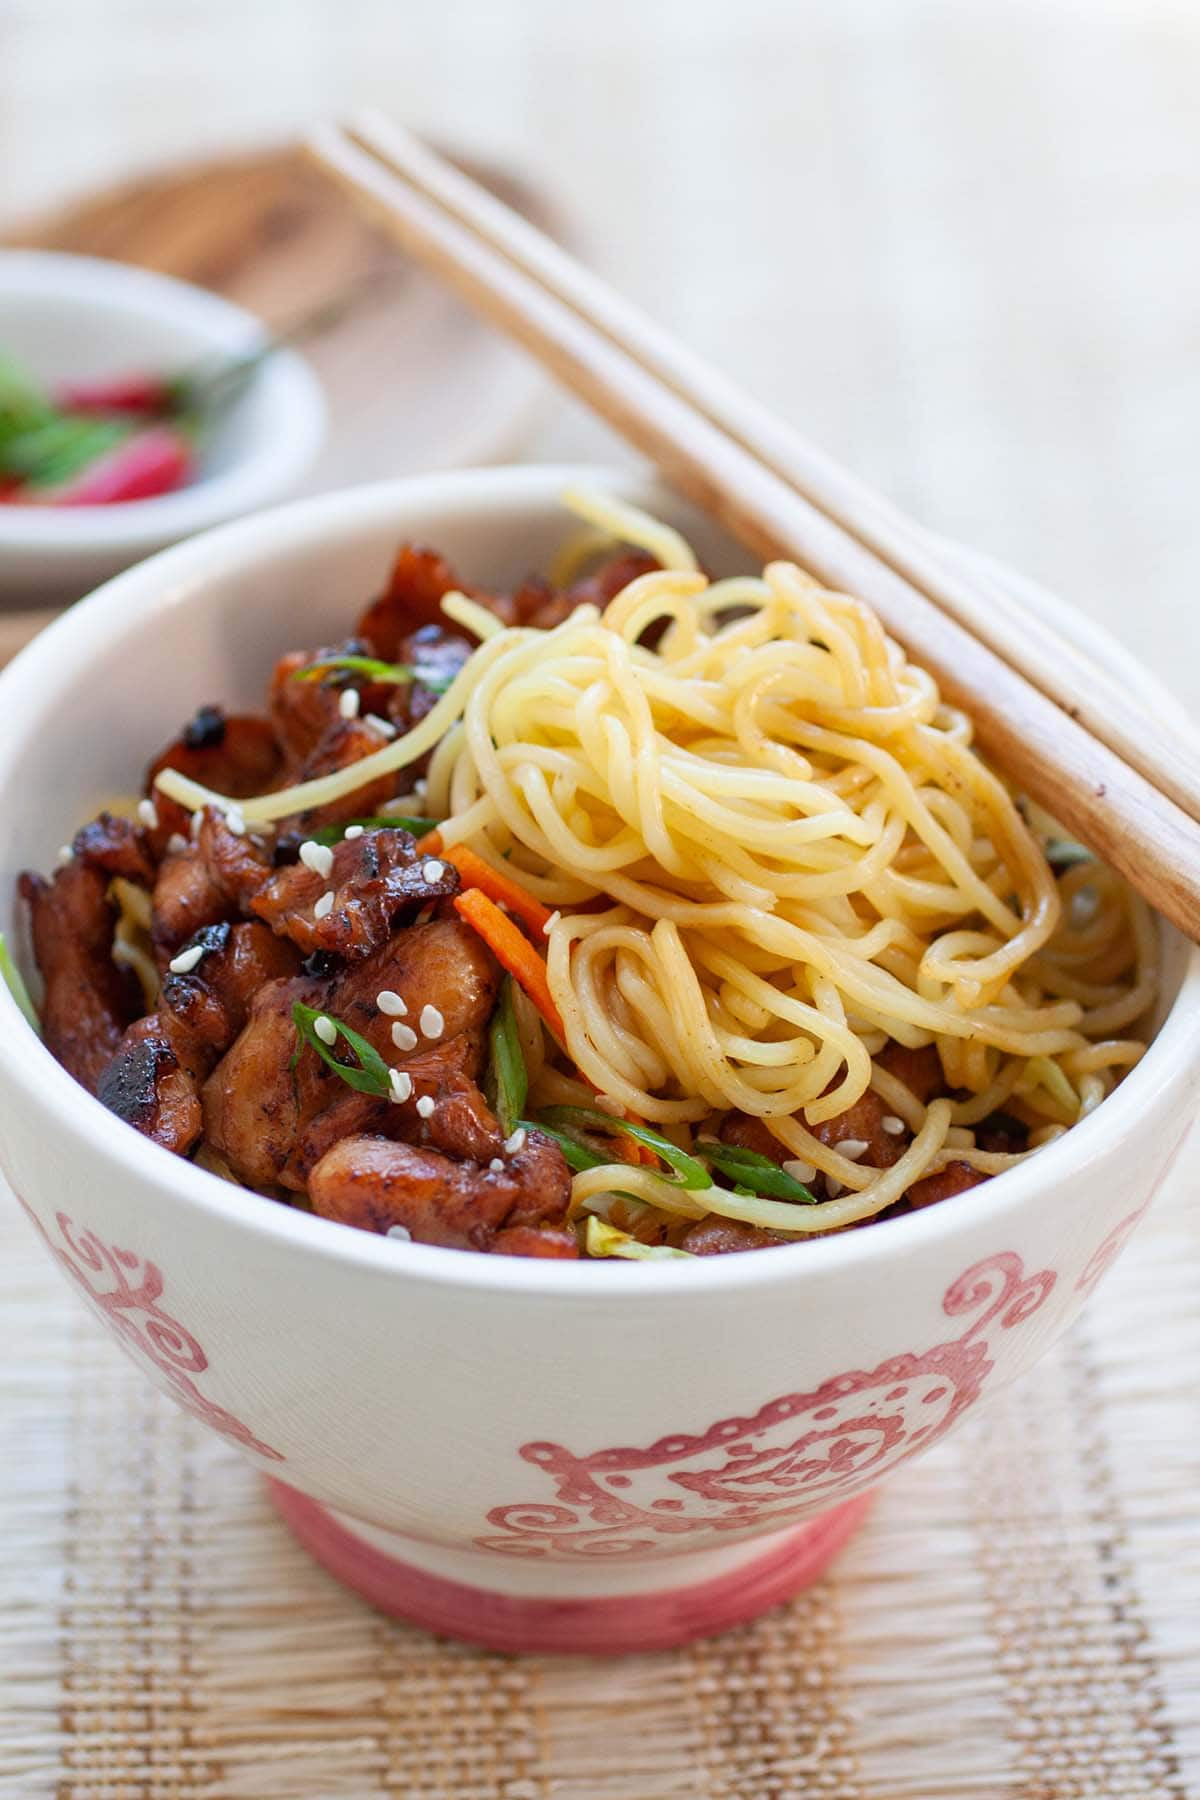 Delicious stir-fried egg noodles with chicken in a bowl, ready to be served.